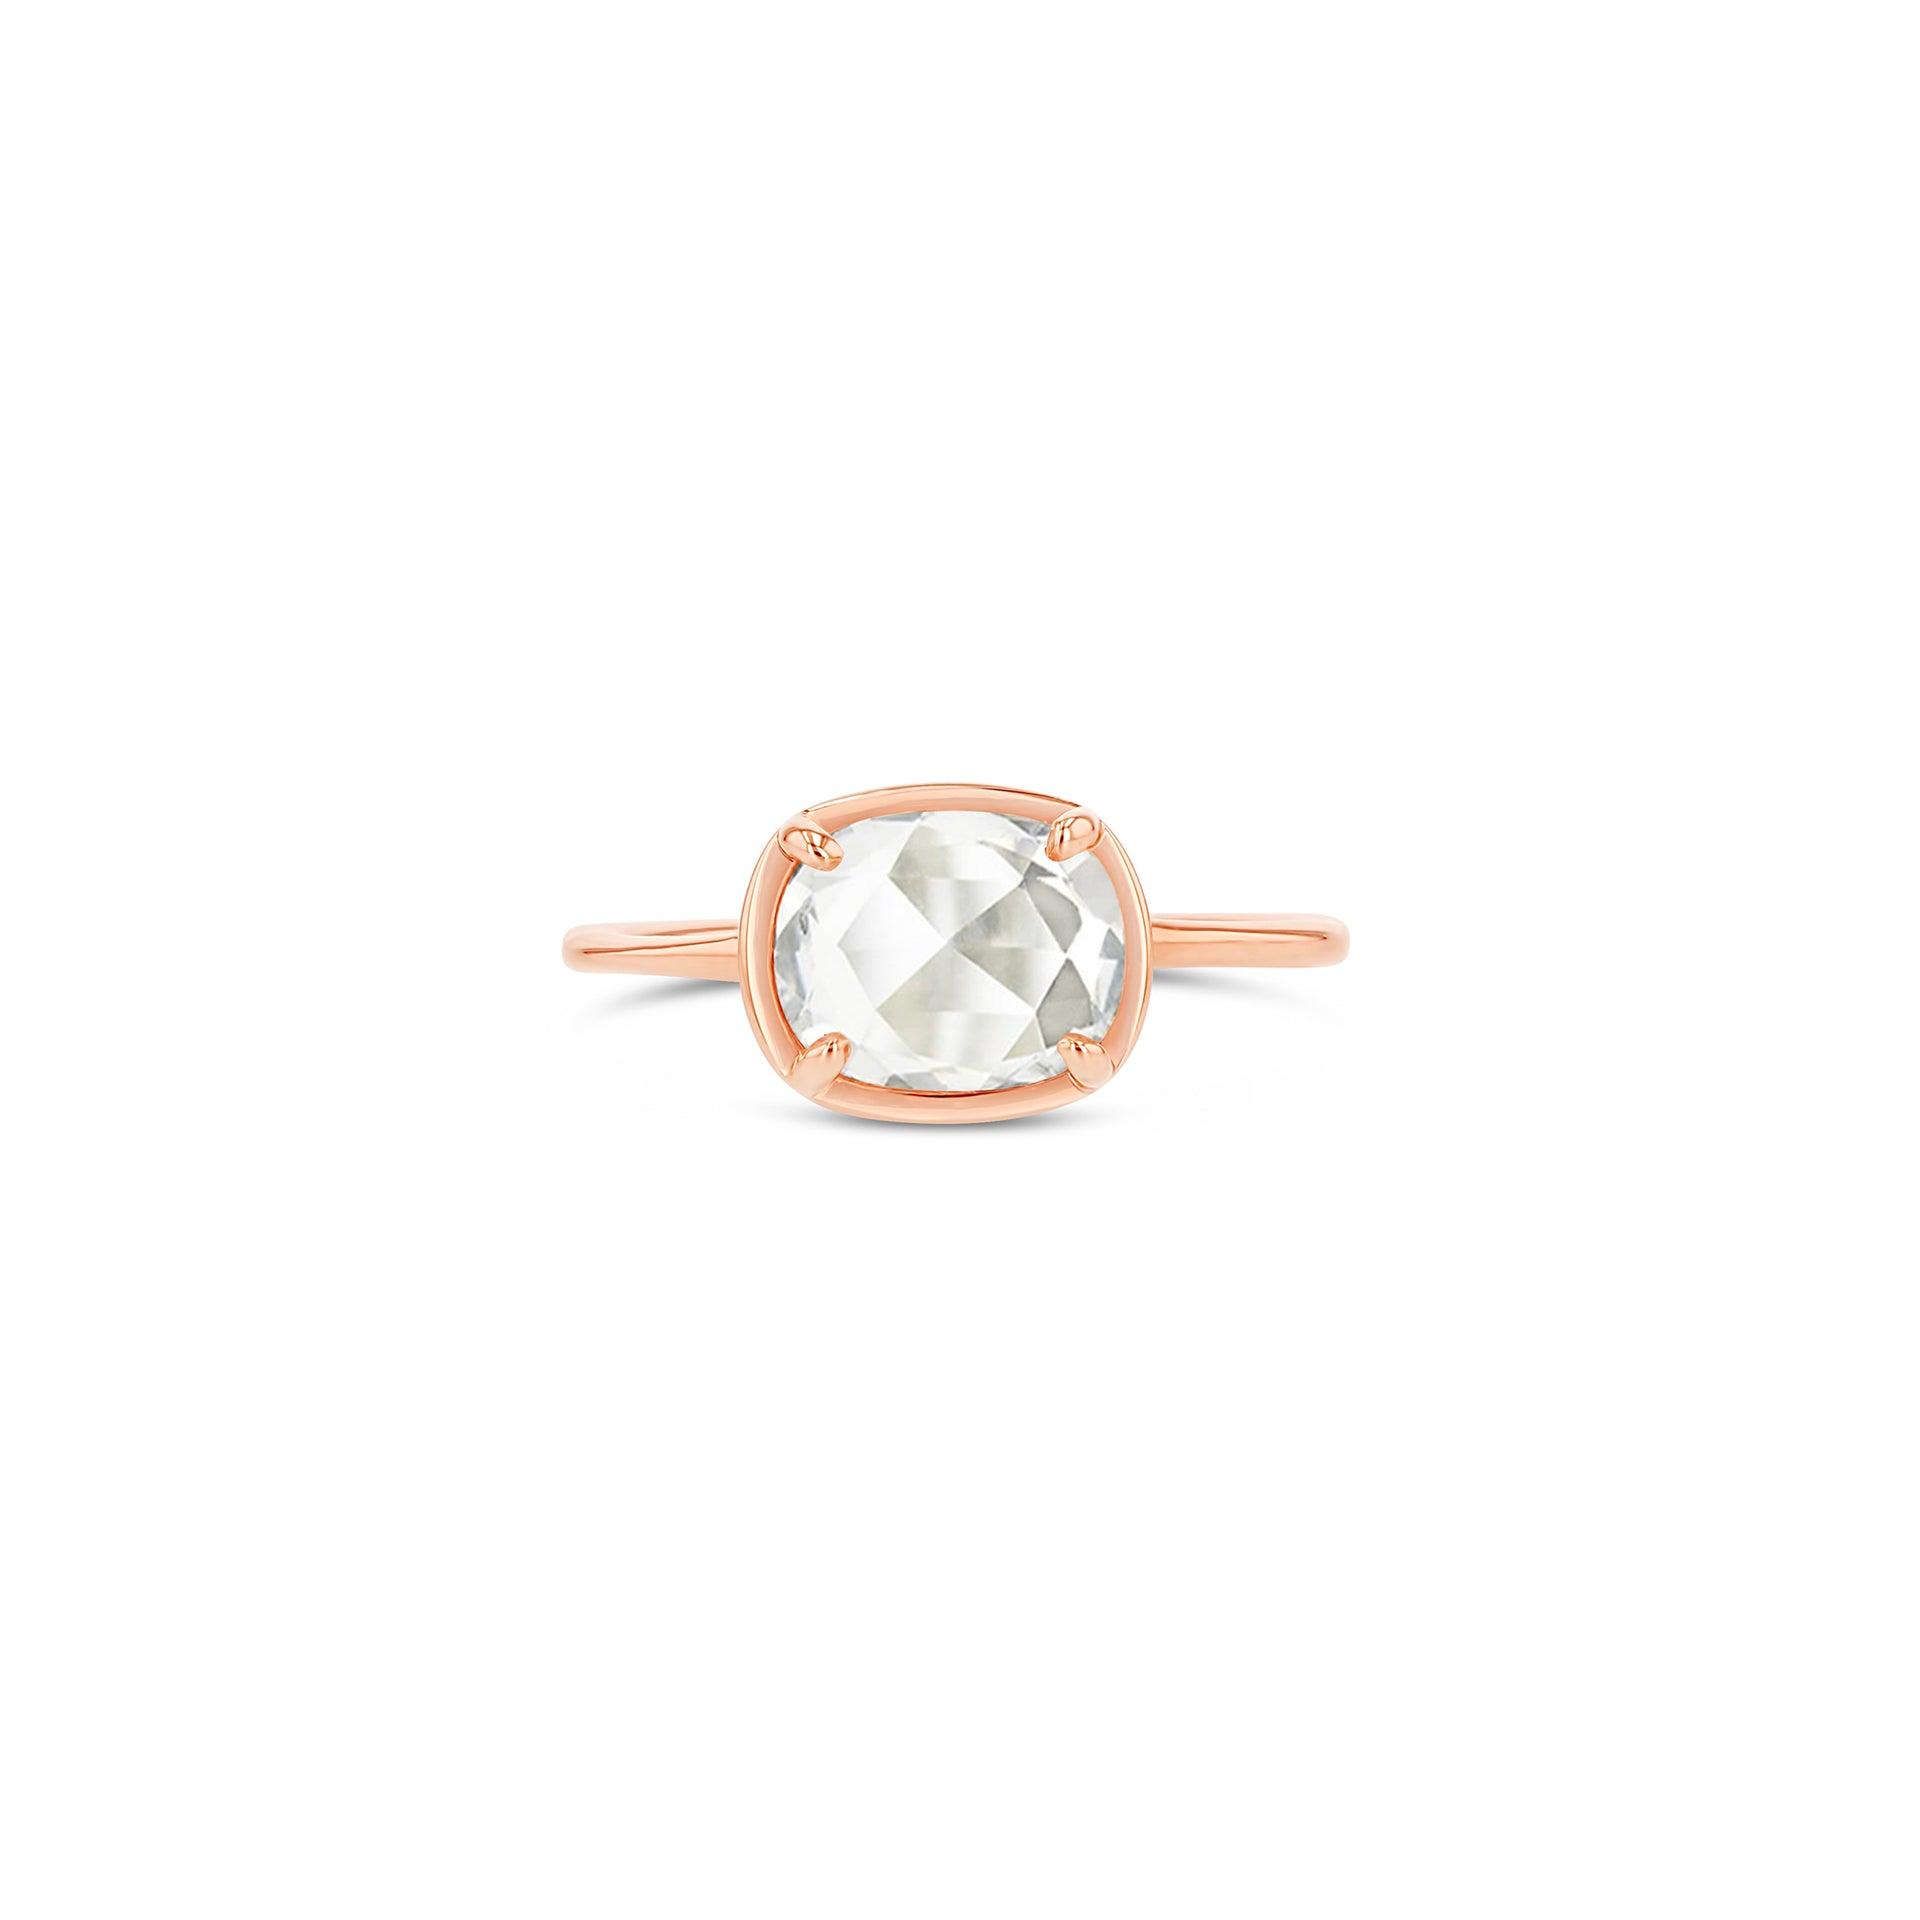 East-West Oval Rose-Cut Diamond Ring